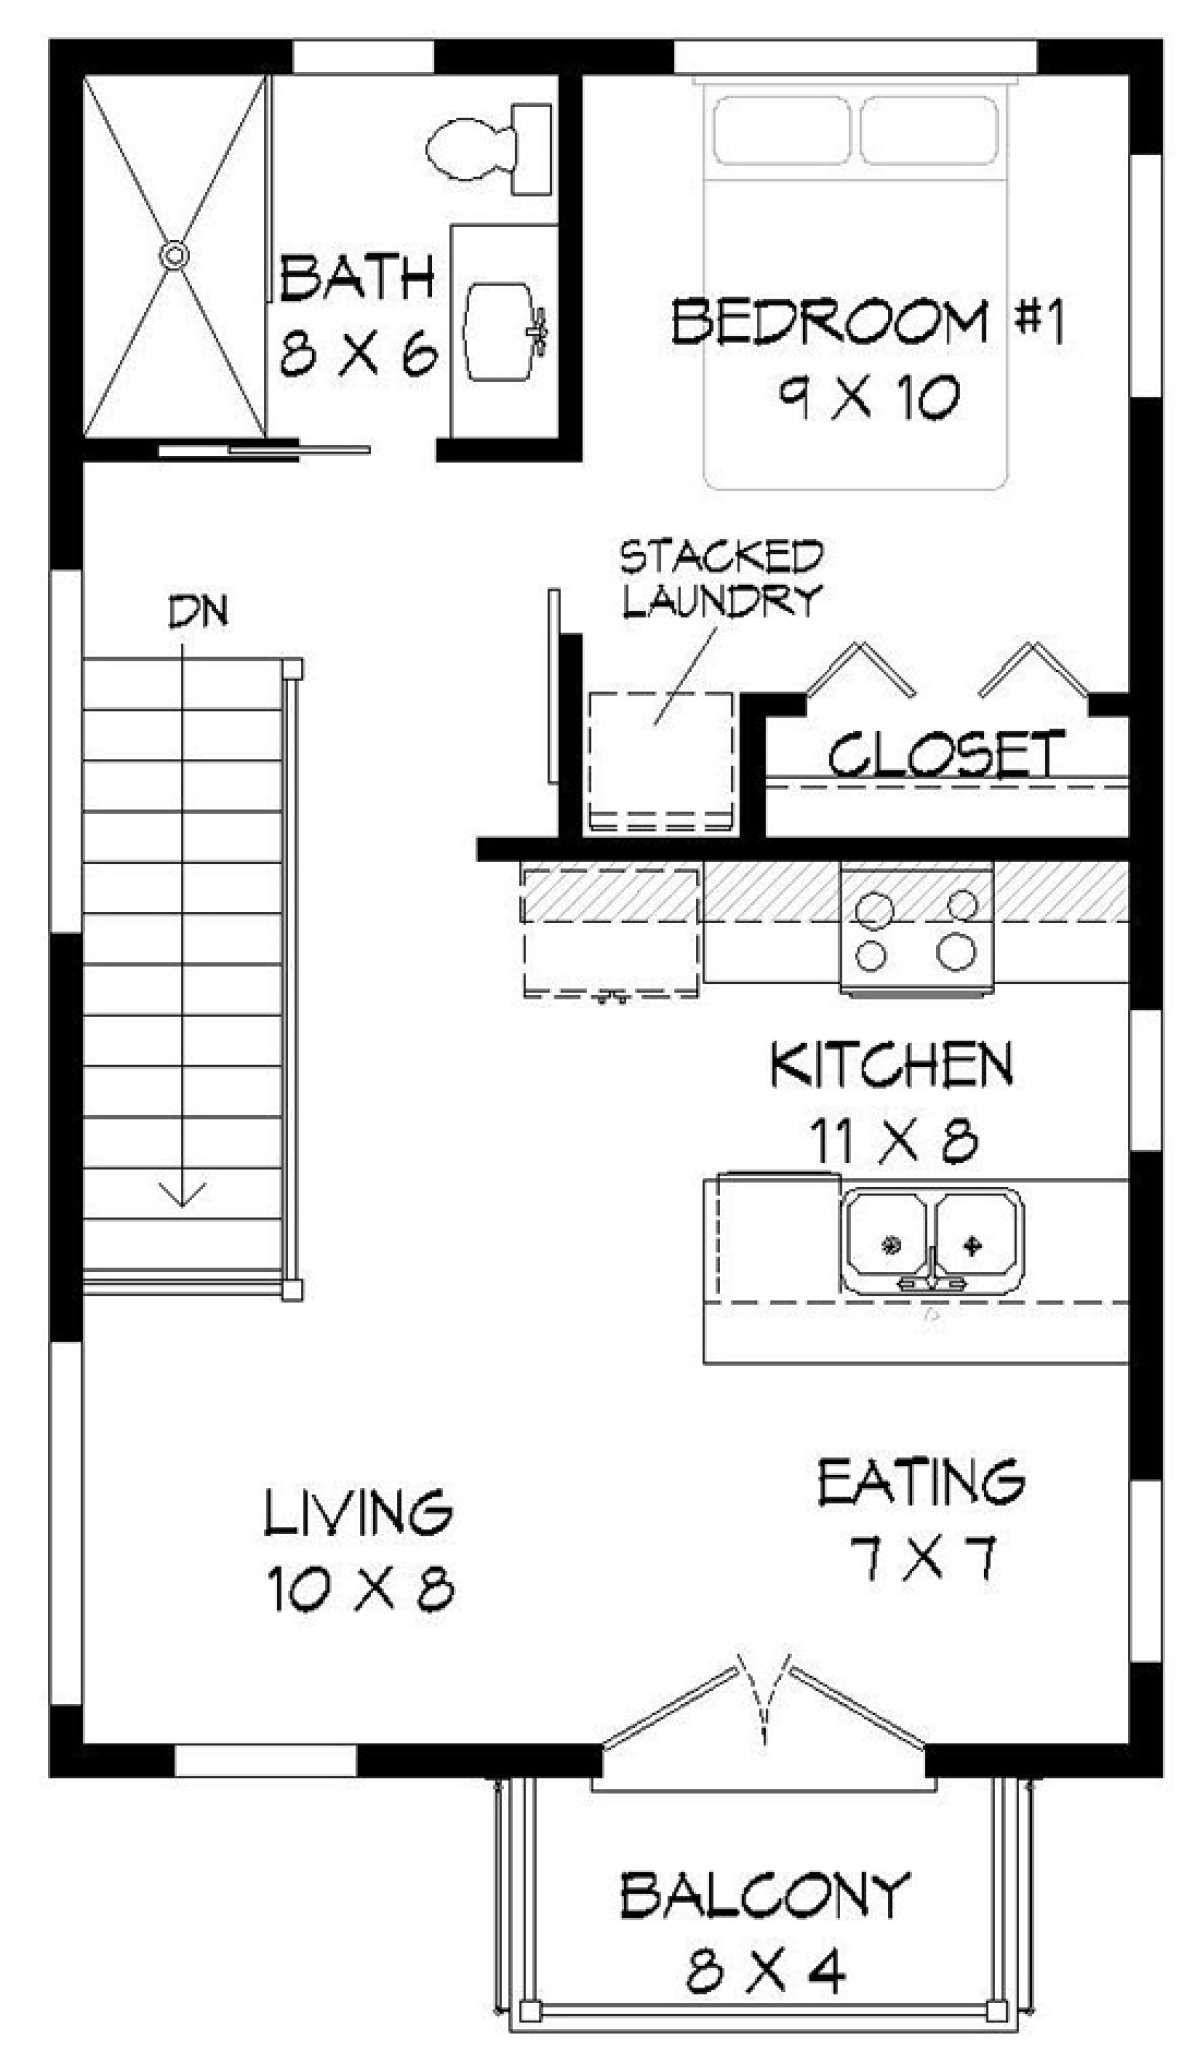 House Plan 940 00042 Modern Plan 572 Square Feet 1 Bedroom 1 Bathroom In 2021 Carriage House Plans Garage Apartment Floor Plans House Plans